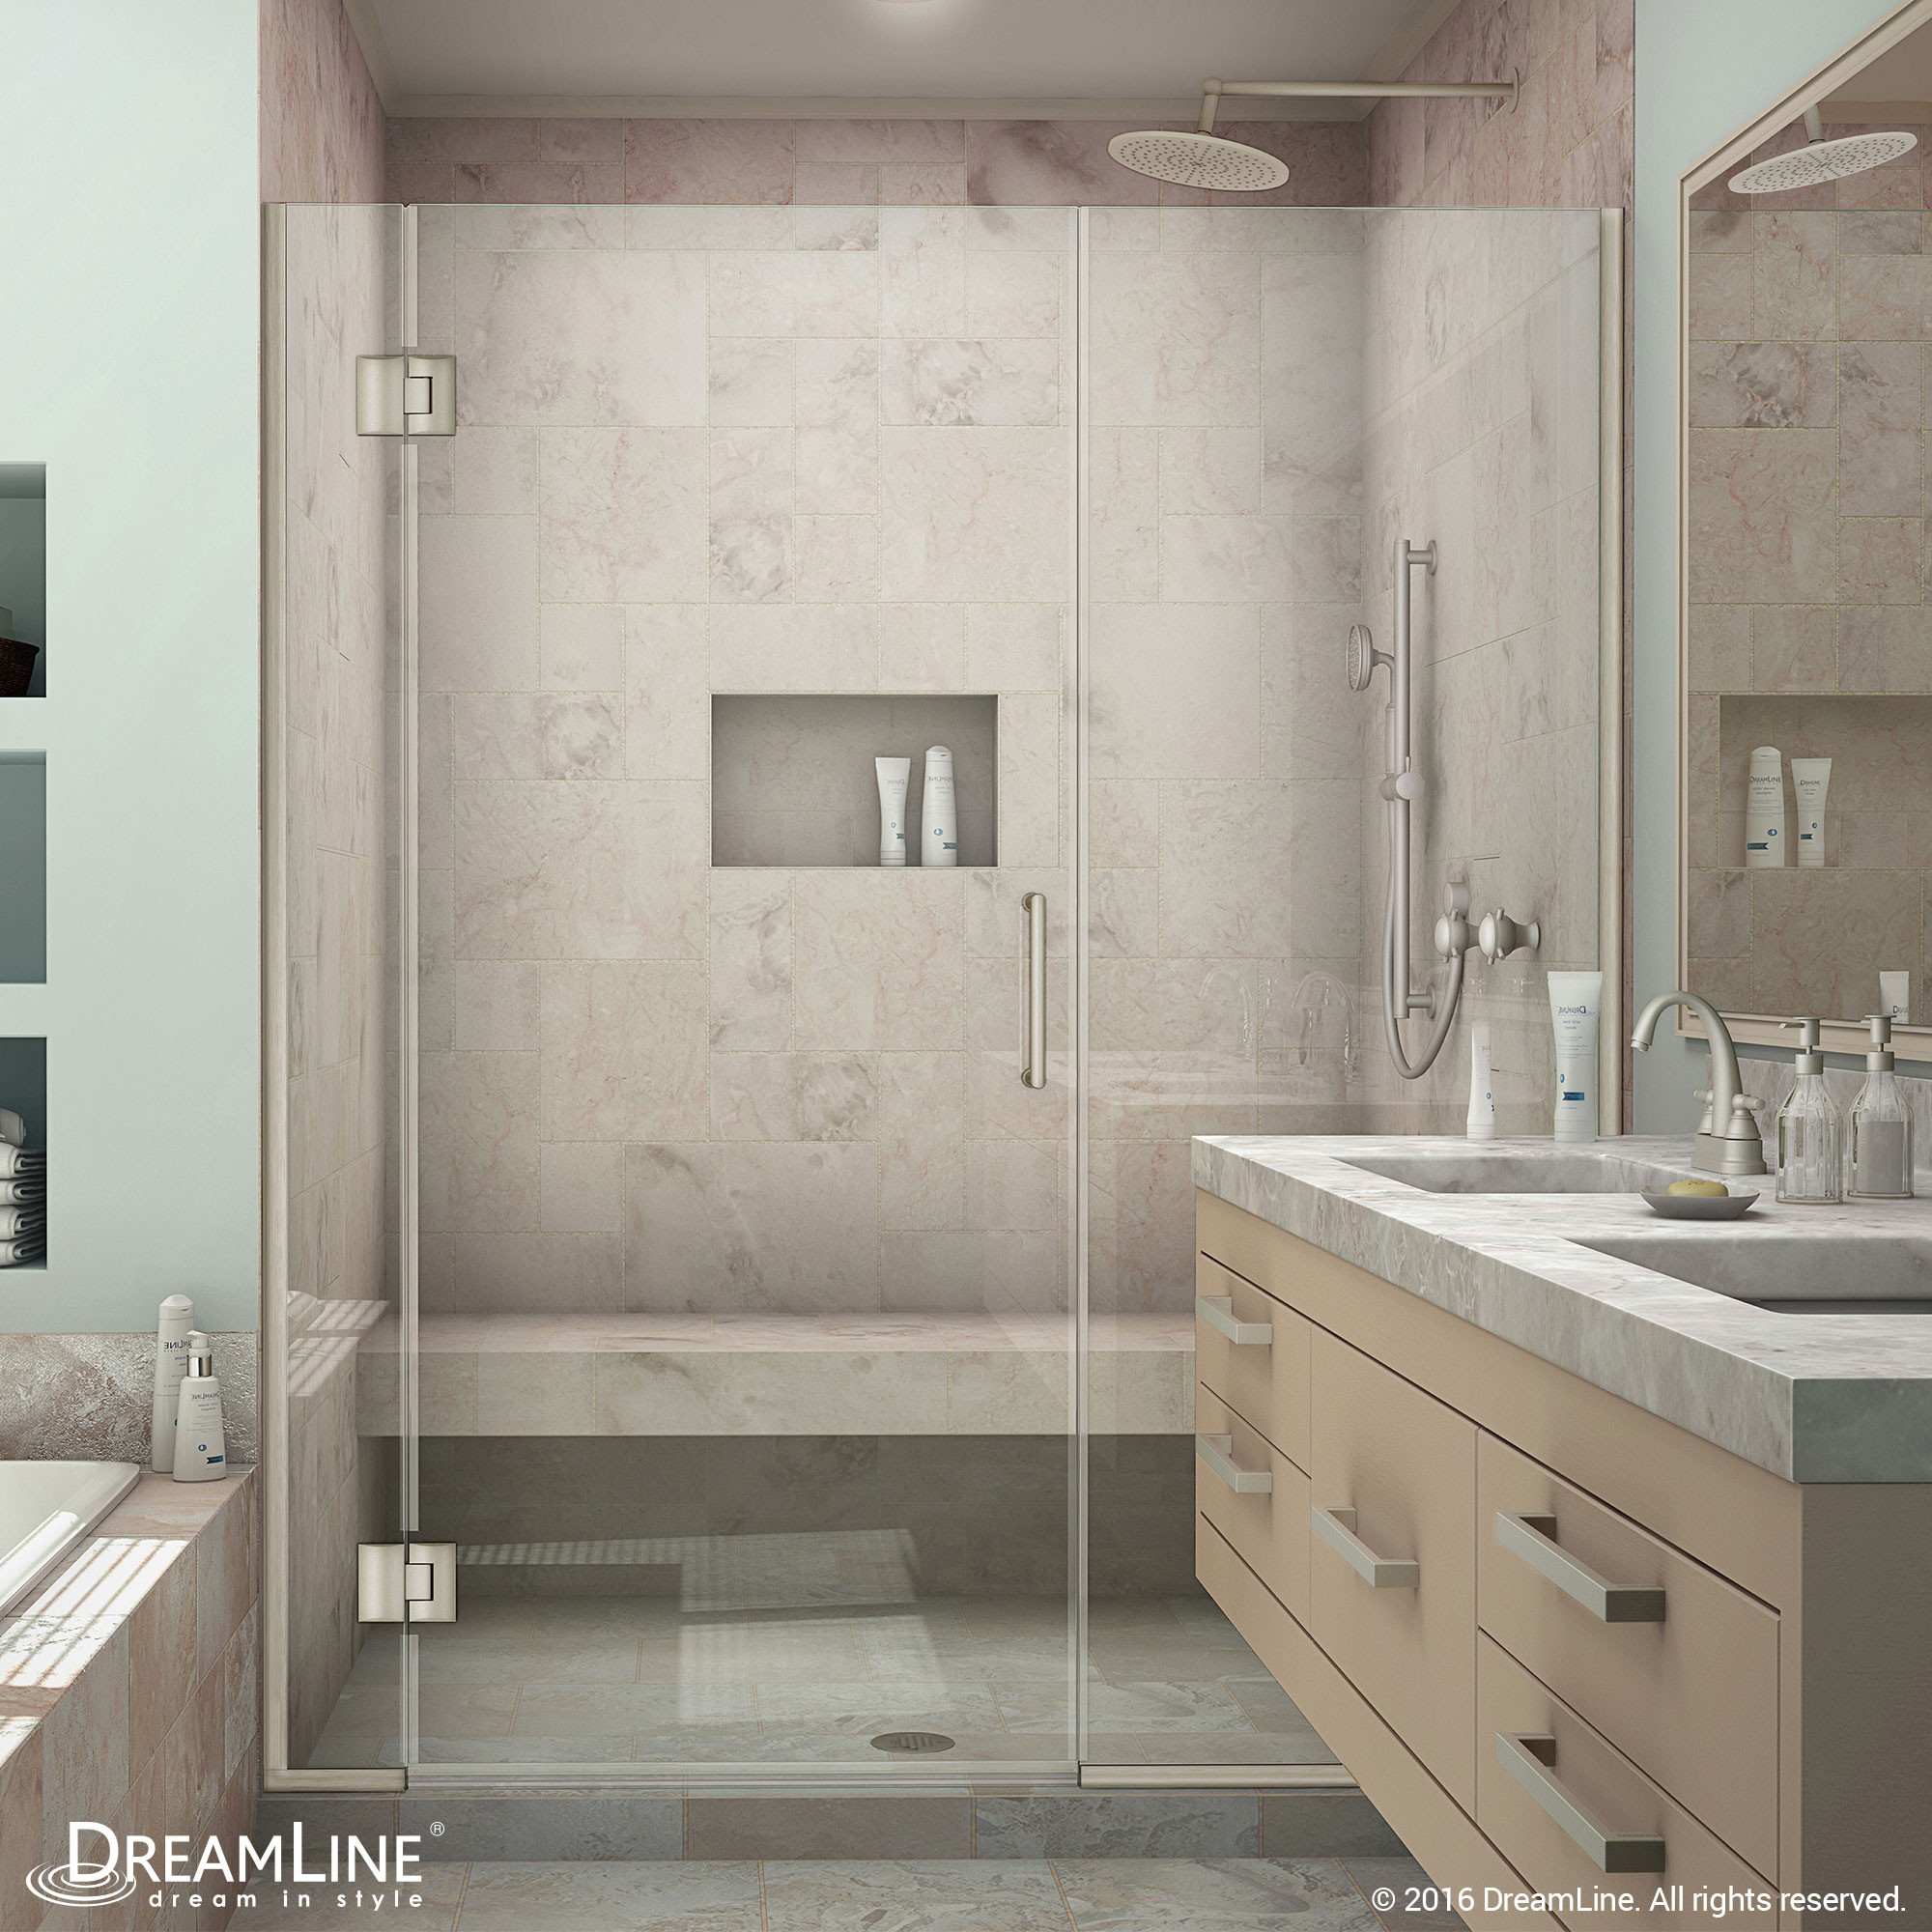 DreamLine D13022572-04 Brushed Nickel Unidoor-X 58 1/2 - 59 in. W x 72 in. H Hinged Shower Door